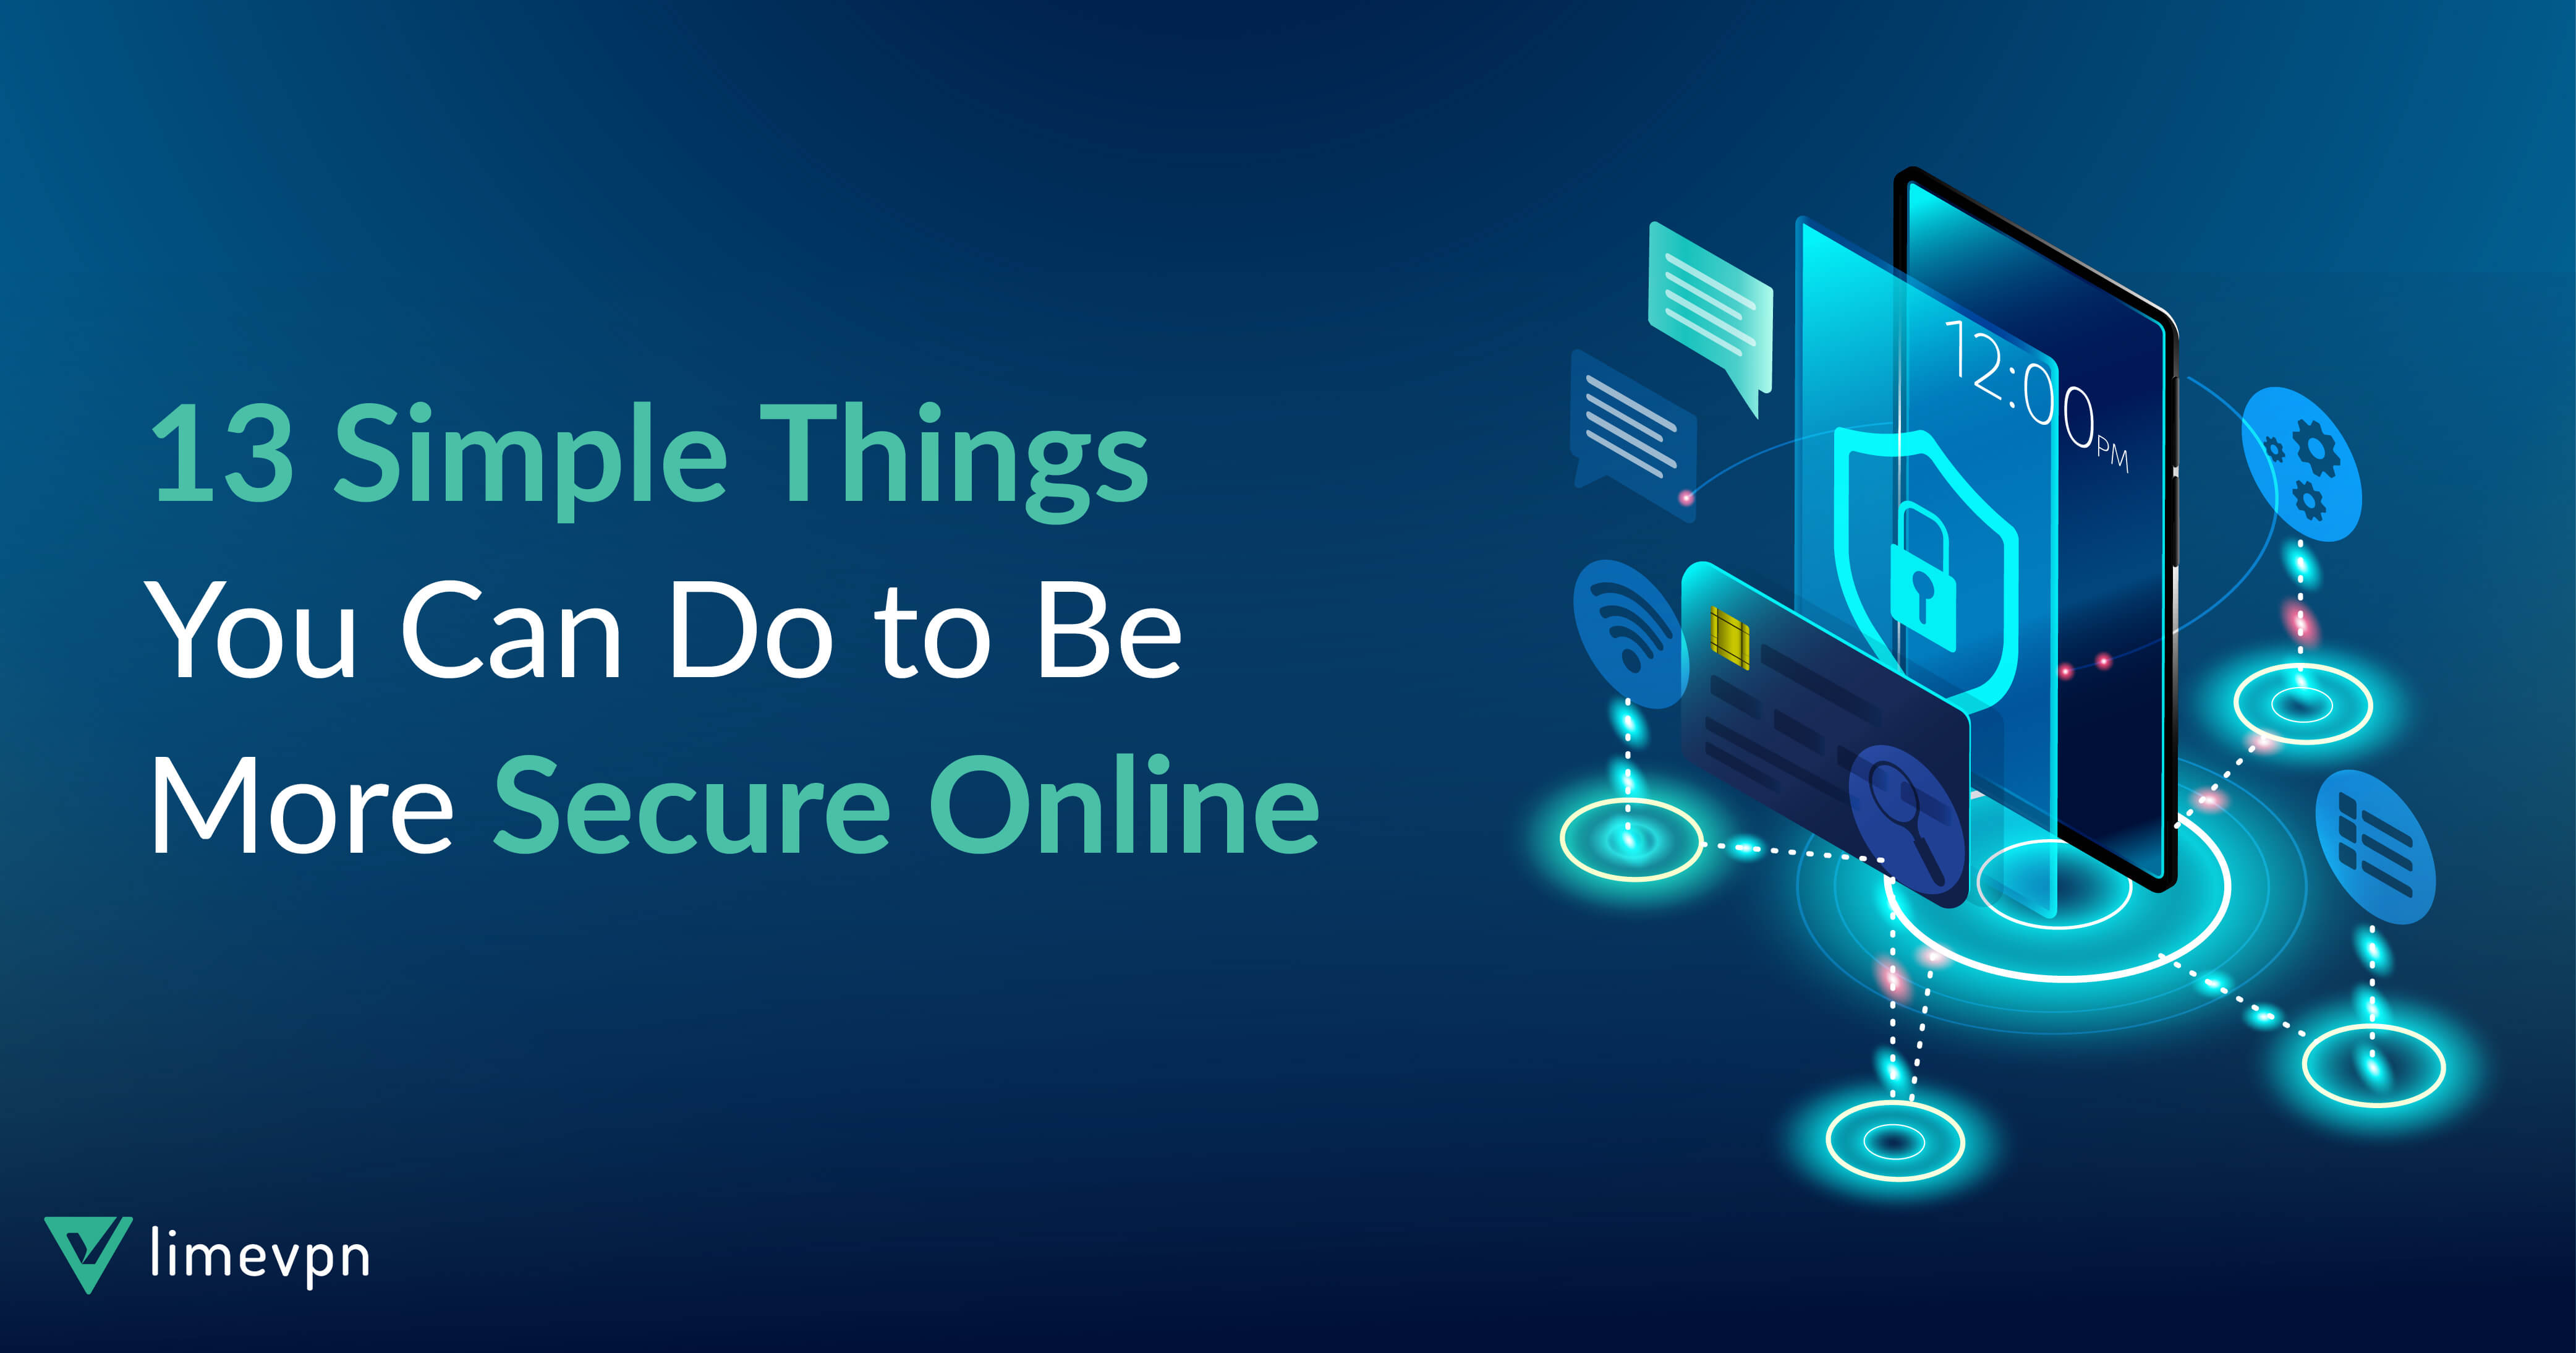 How to protect from ransomware and identity theft online- network security - online safety - internet safety - identity protection - protect money online